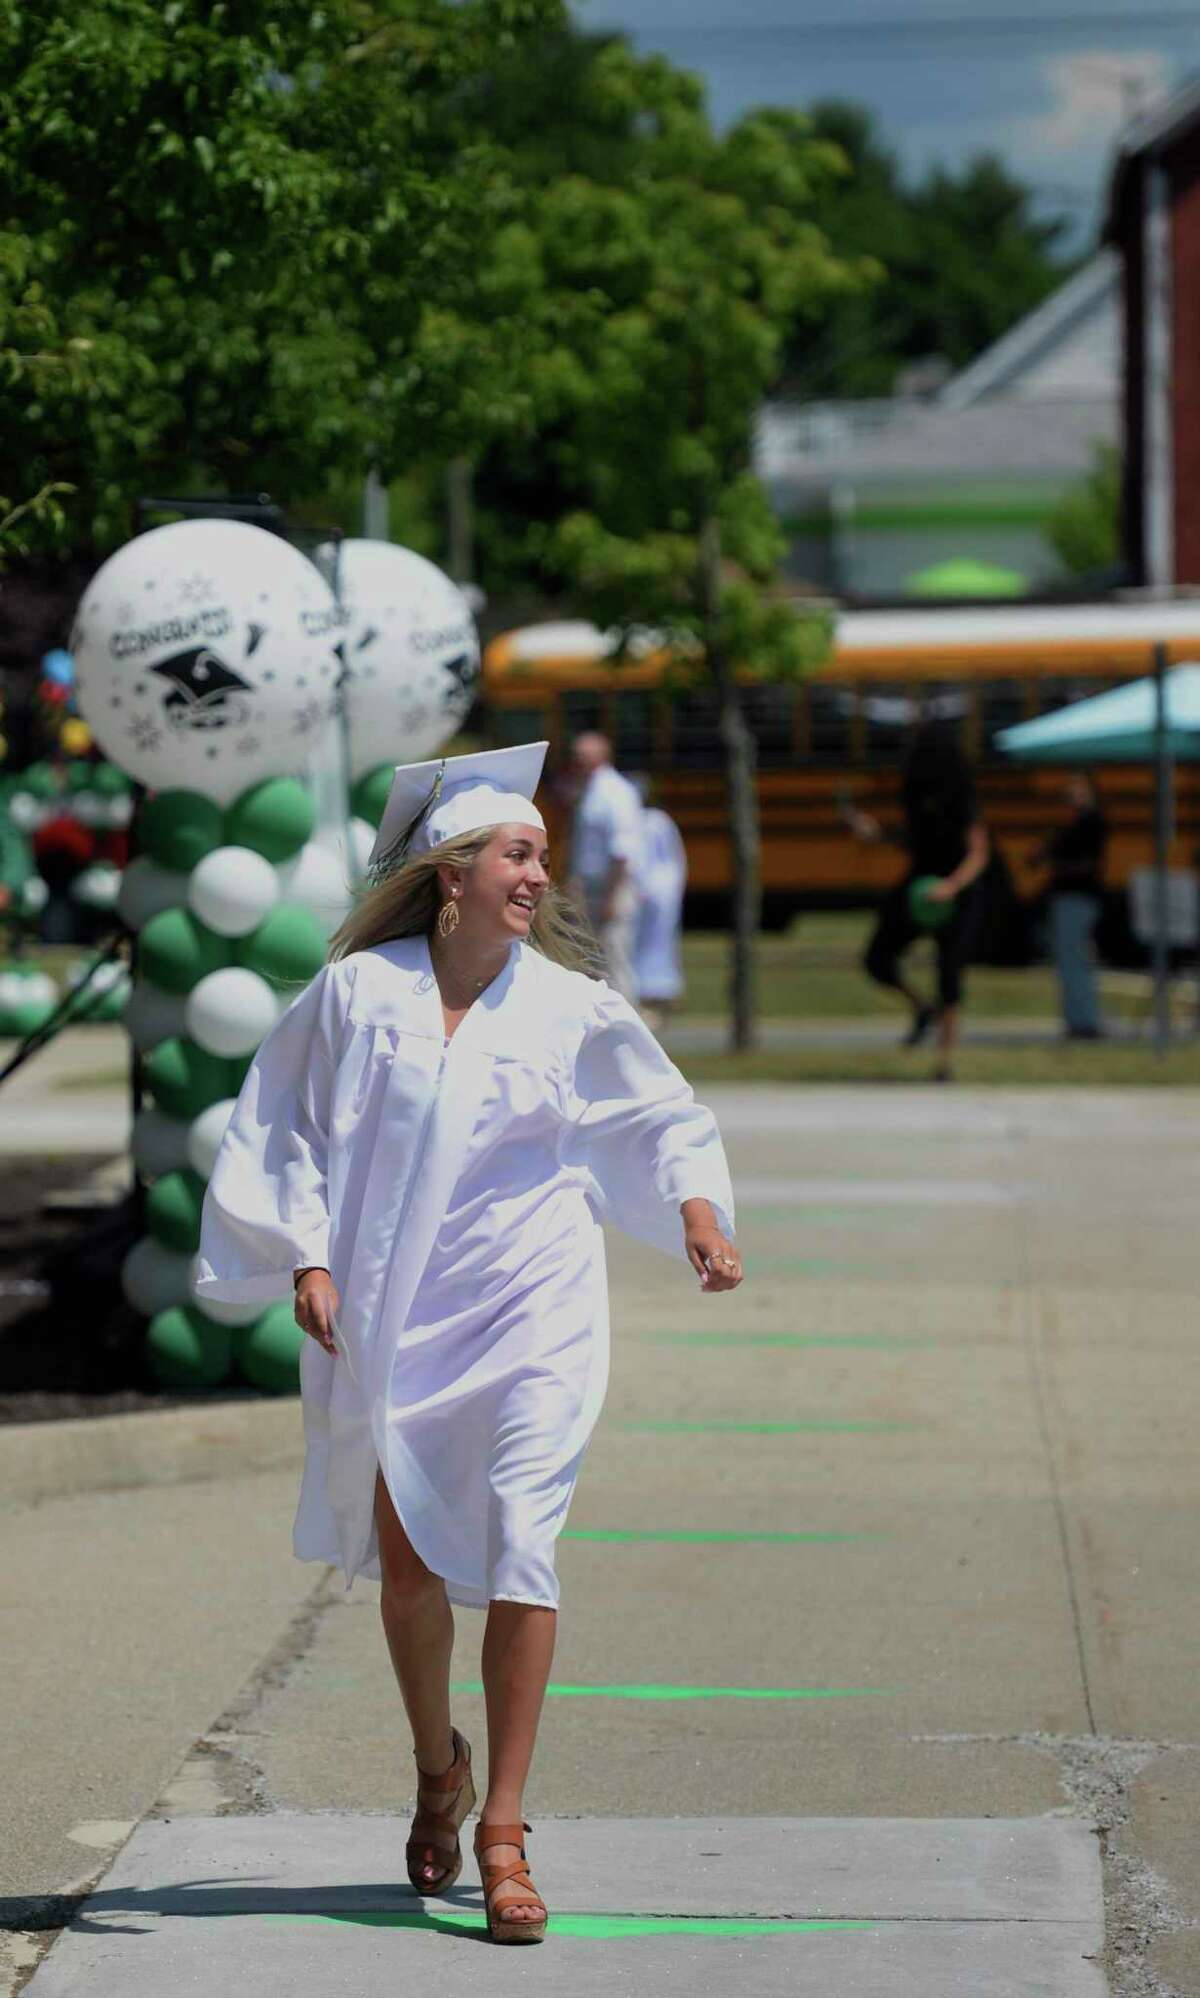 Graduate Amanda Leigh Clark looks over to her family's car as she walks to receive her diploma at the 2020 New Milford High School graduation ceremony on Saturday. The graduates paraded from Sarah Noble Intermediate School to the high school and walked the sidewalk to receive their diplomas. June 20, 2020, in New Milford, Conn.